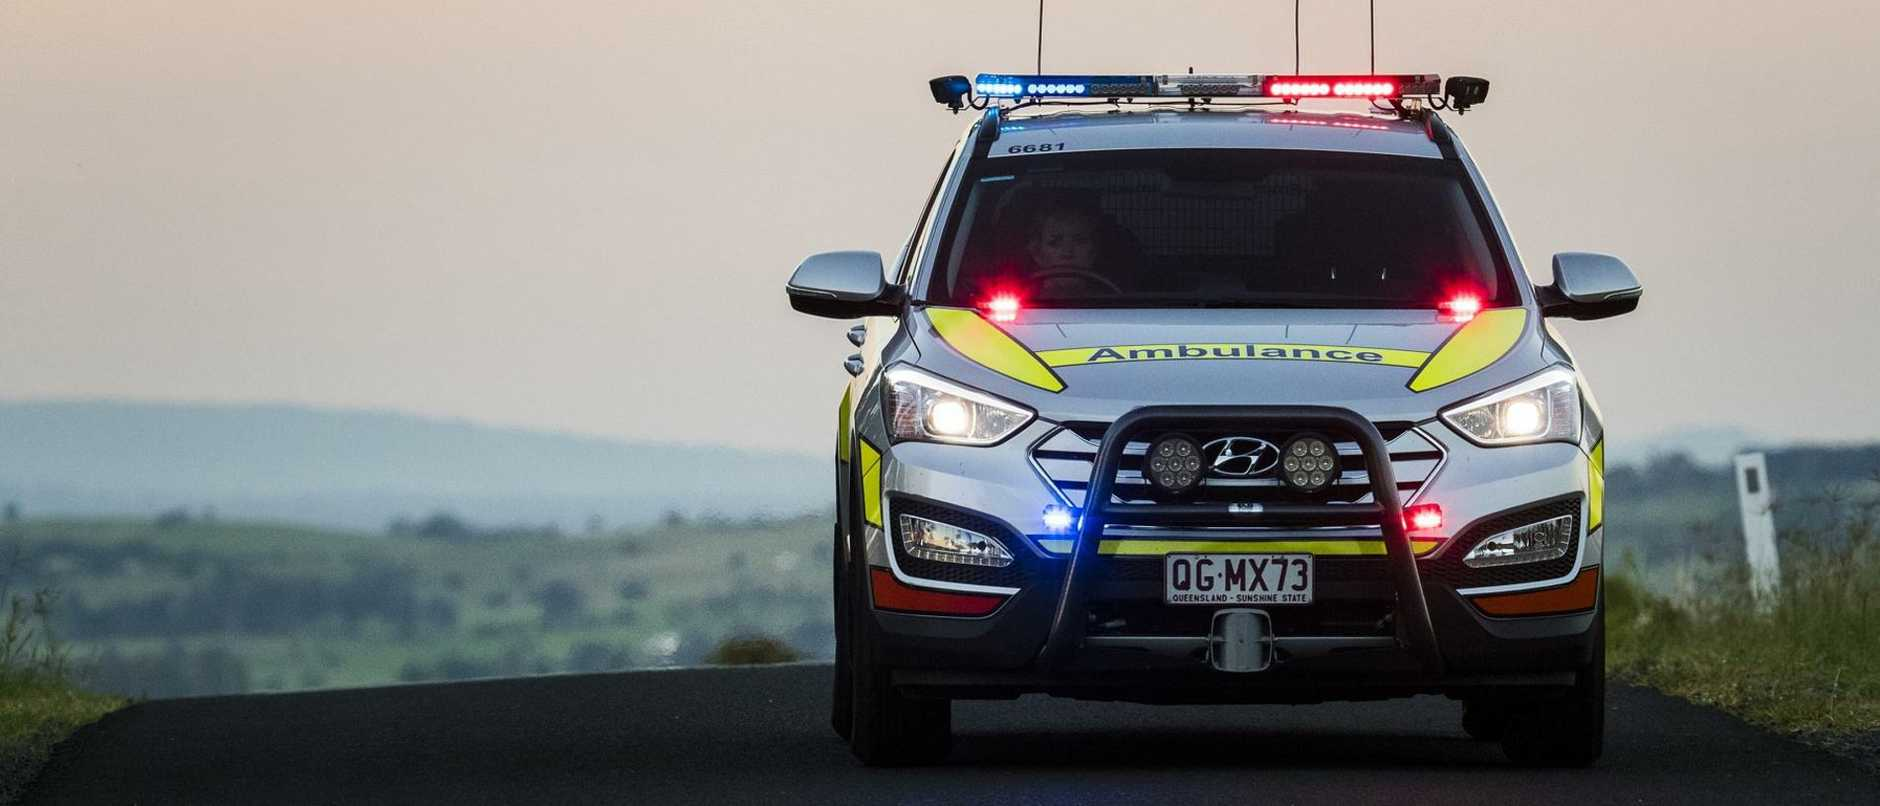 A motorbike rider has suffered serious arm injuries in a crash on the Gold Coast.